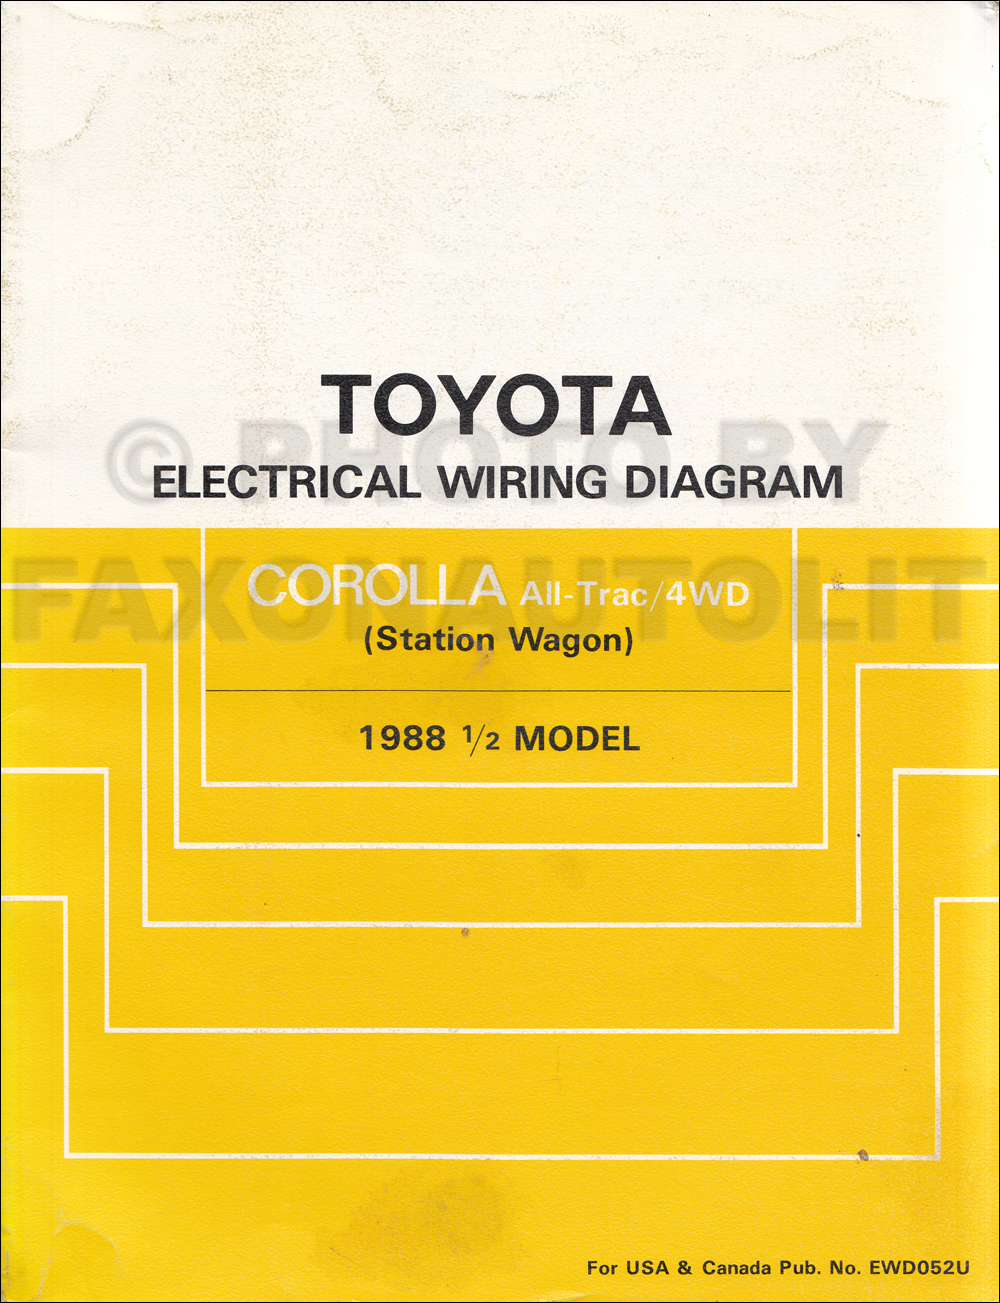 2010 Toyota Camry Electrical Wiring Diagram Manual Library Ikon Governor 1988 Corolla All Trac 4wd Station Wagon Original